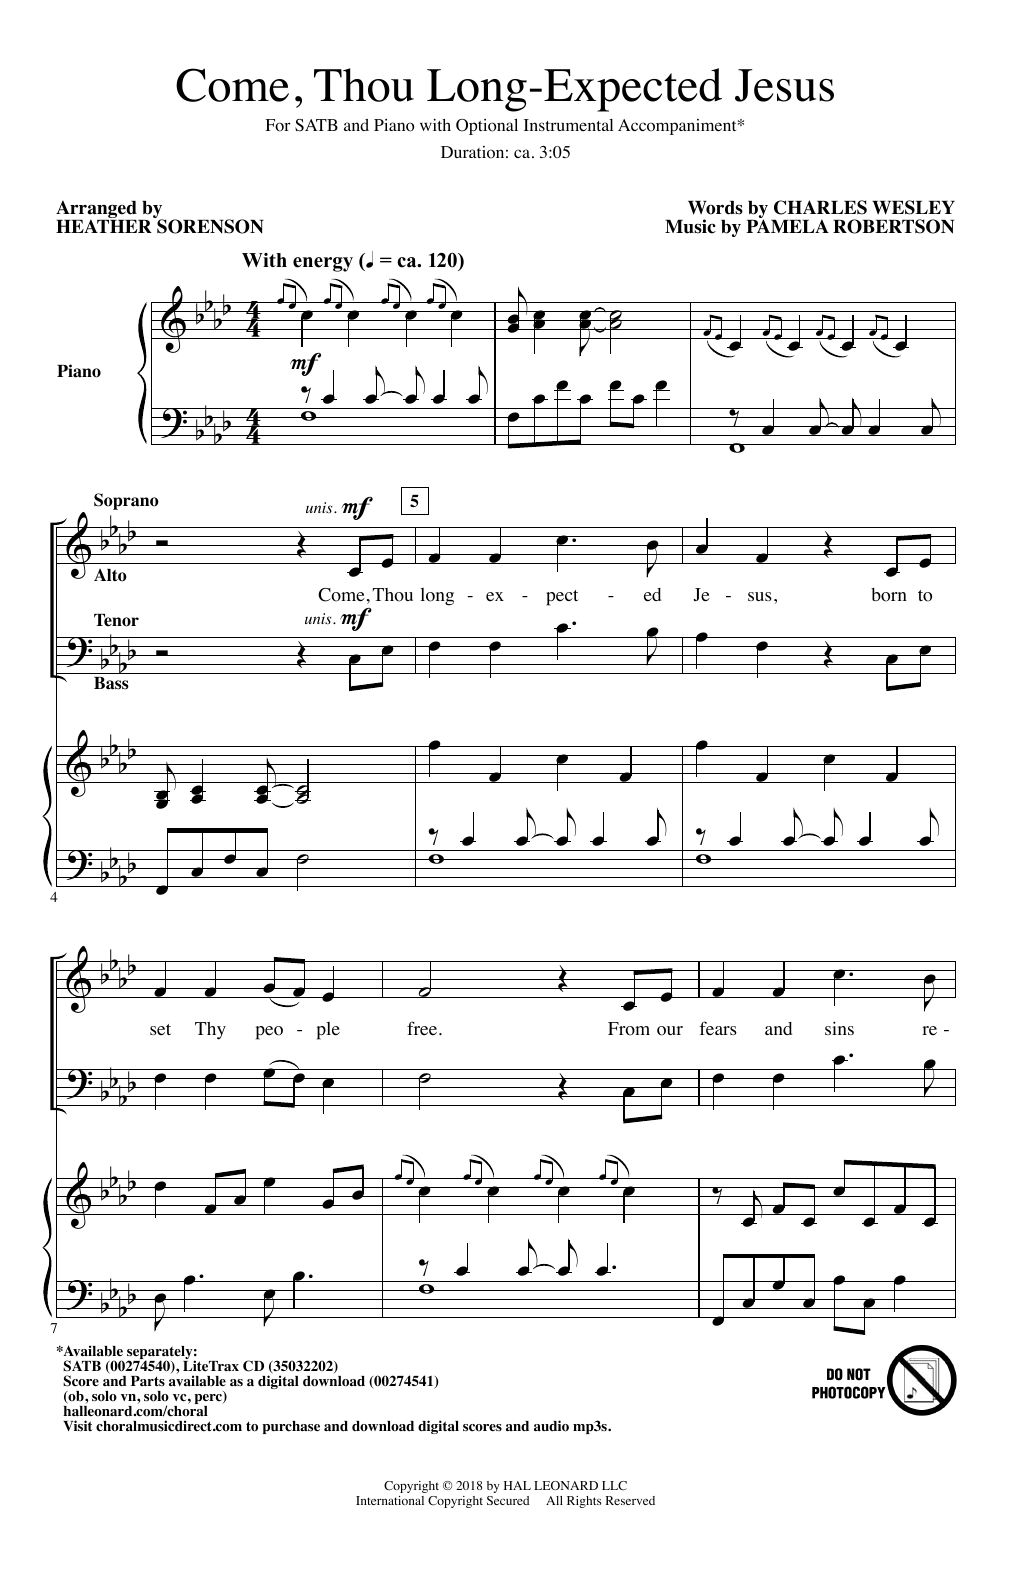 Come, Thou Long-Expected Jesus (SATB Choir)